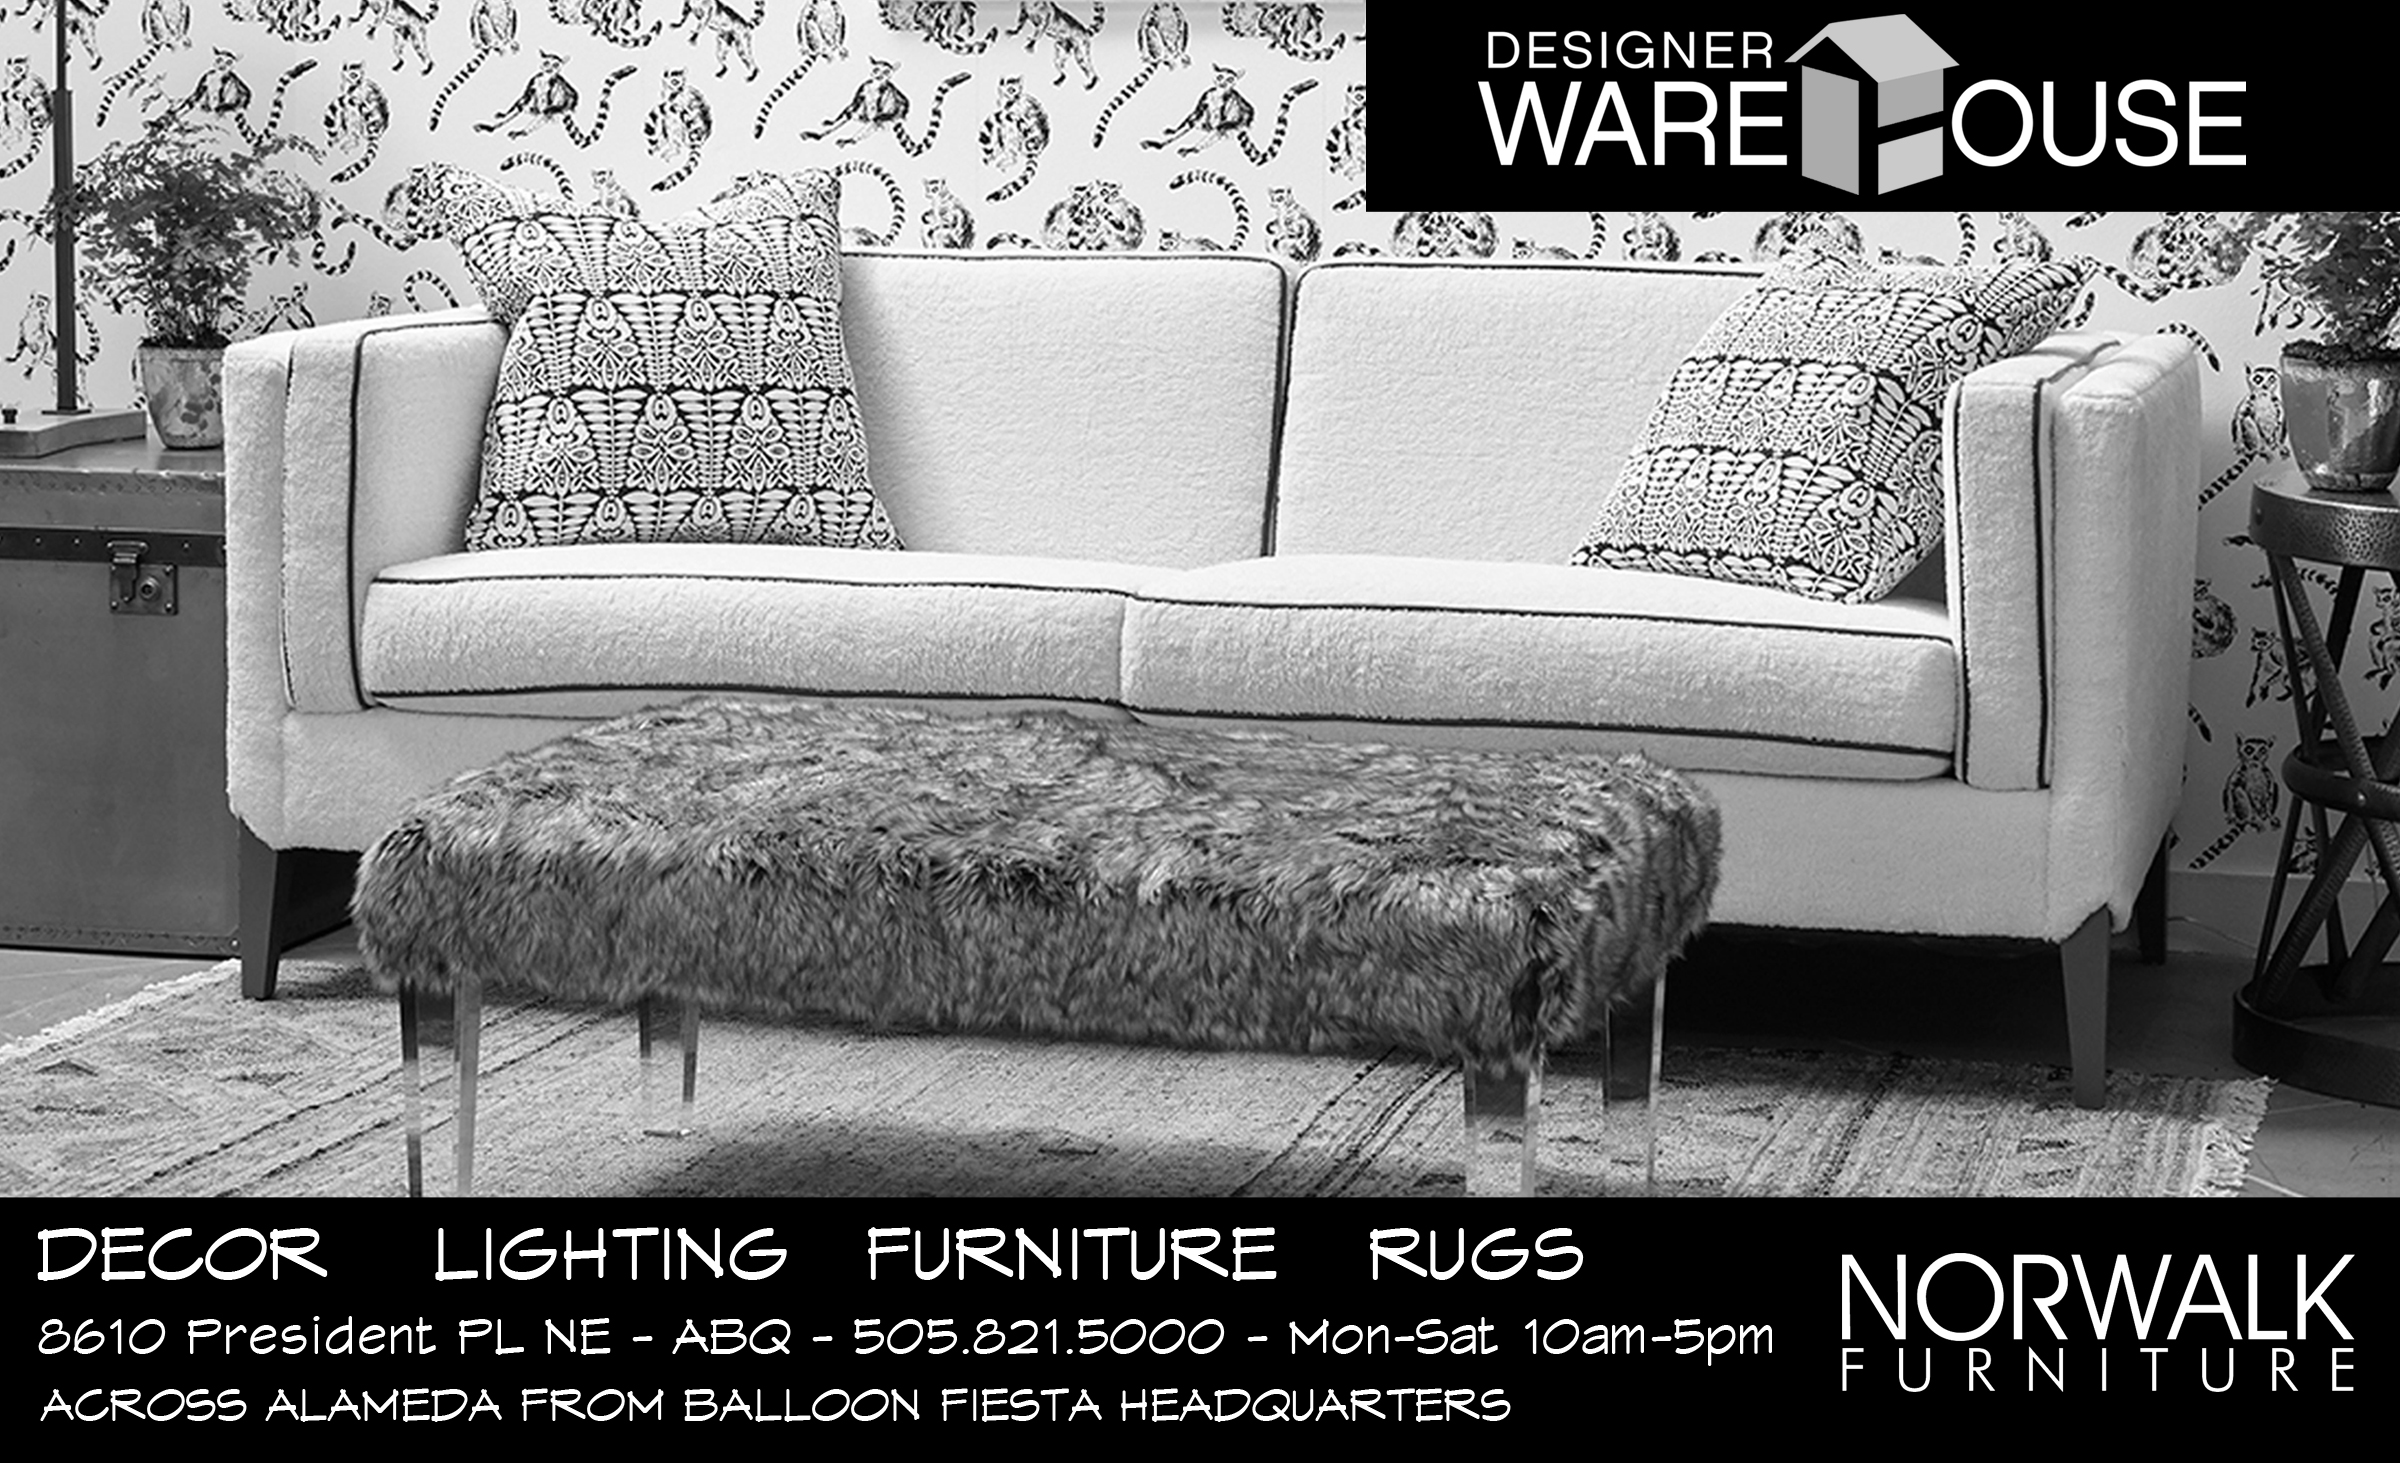 Designer Warehouse Furniture Carpetcleaningvirginia Com